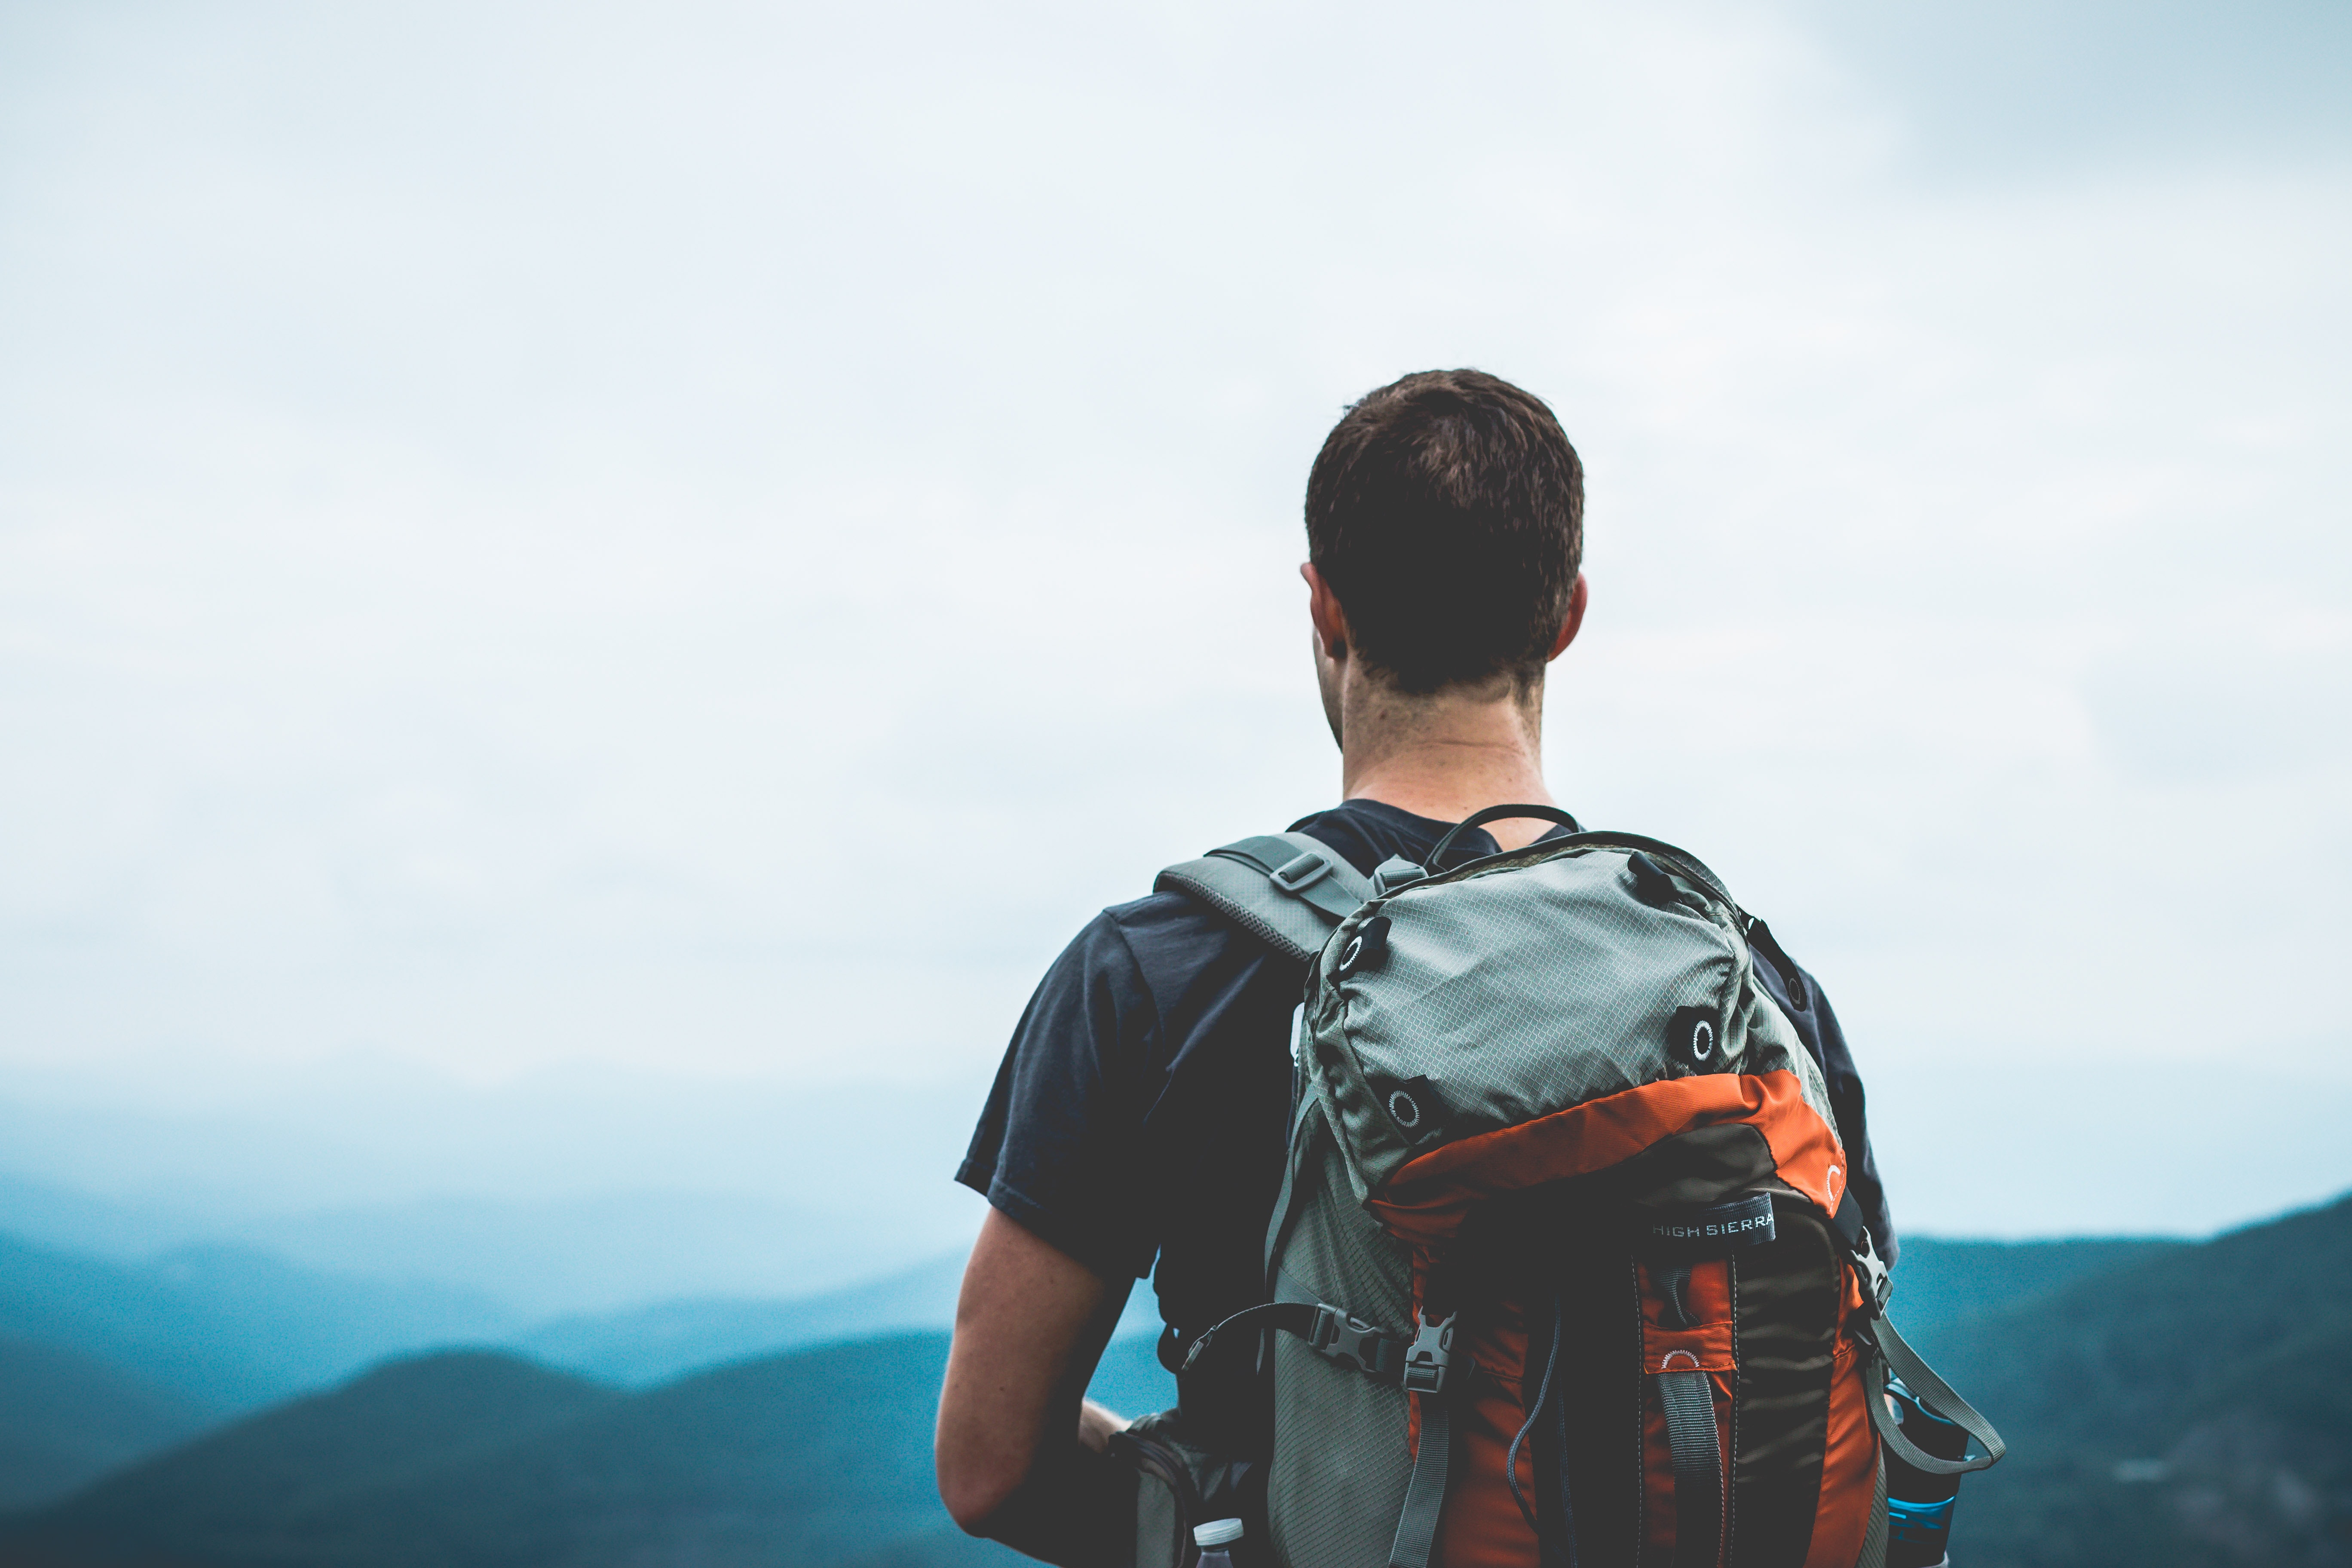 Standing behind a hiker who's made it to the top of a mountain